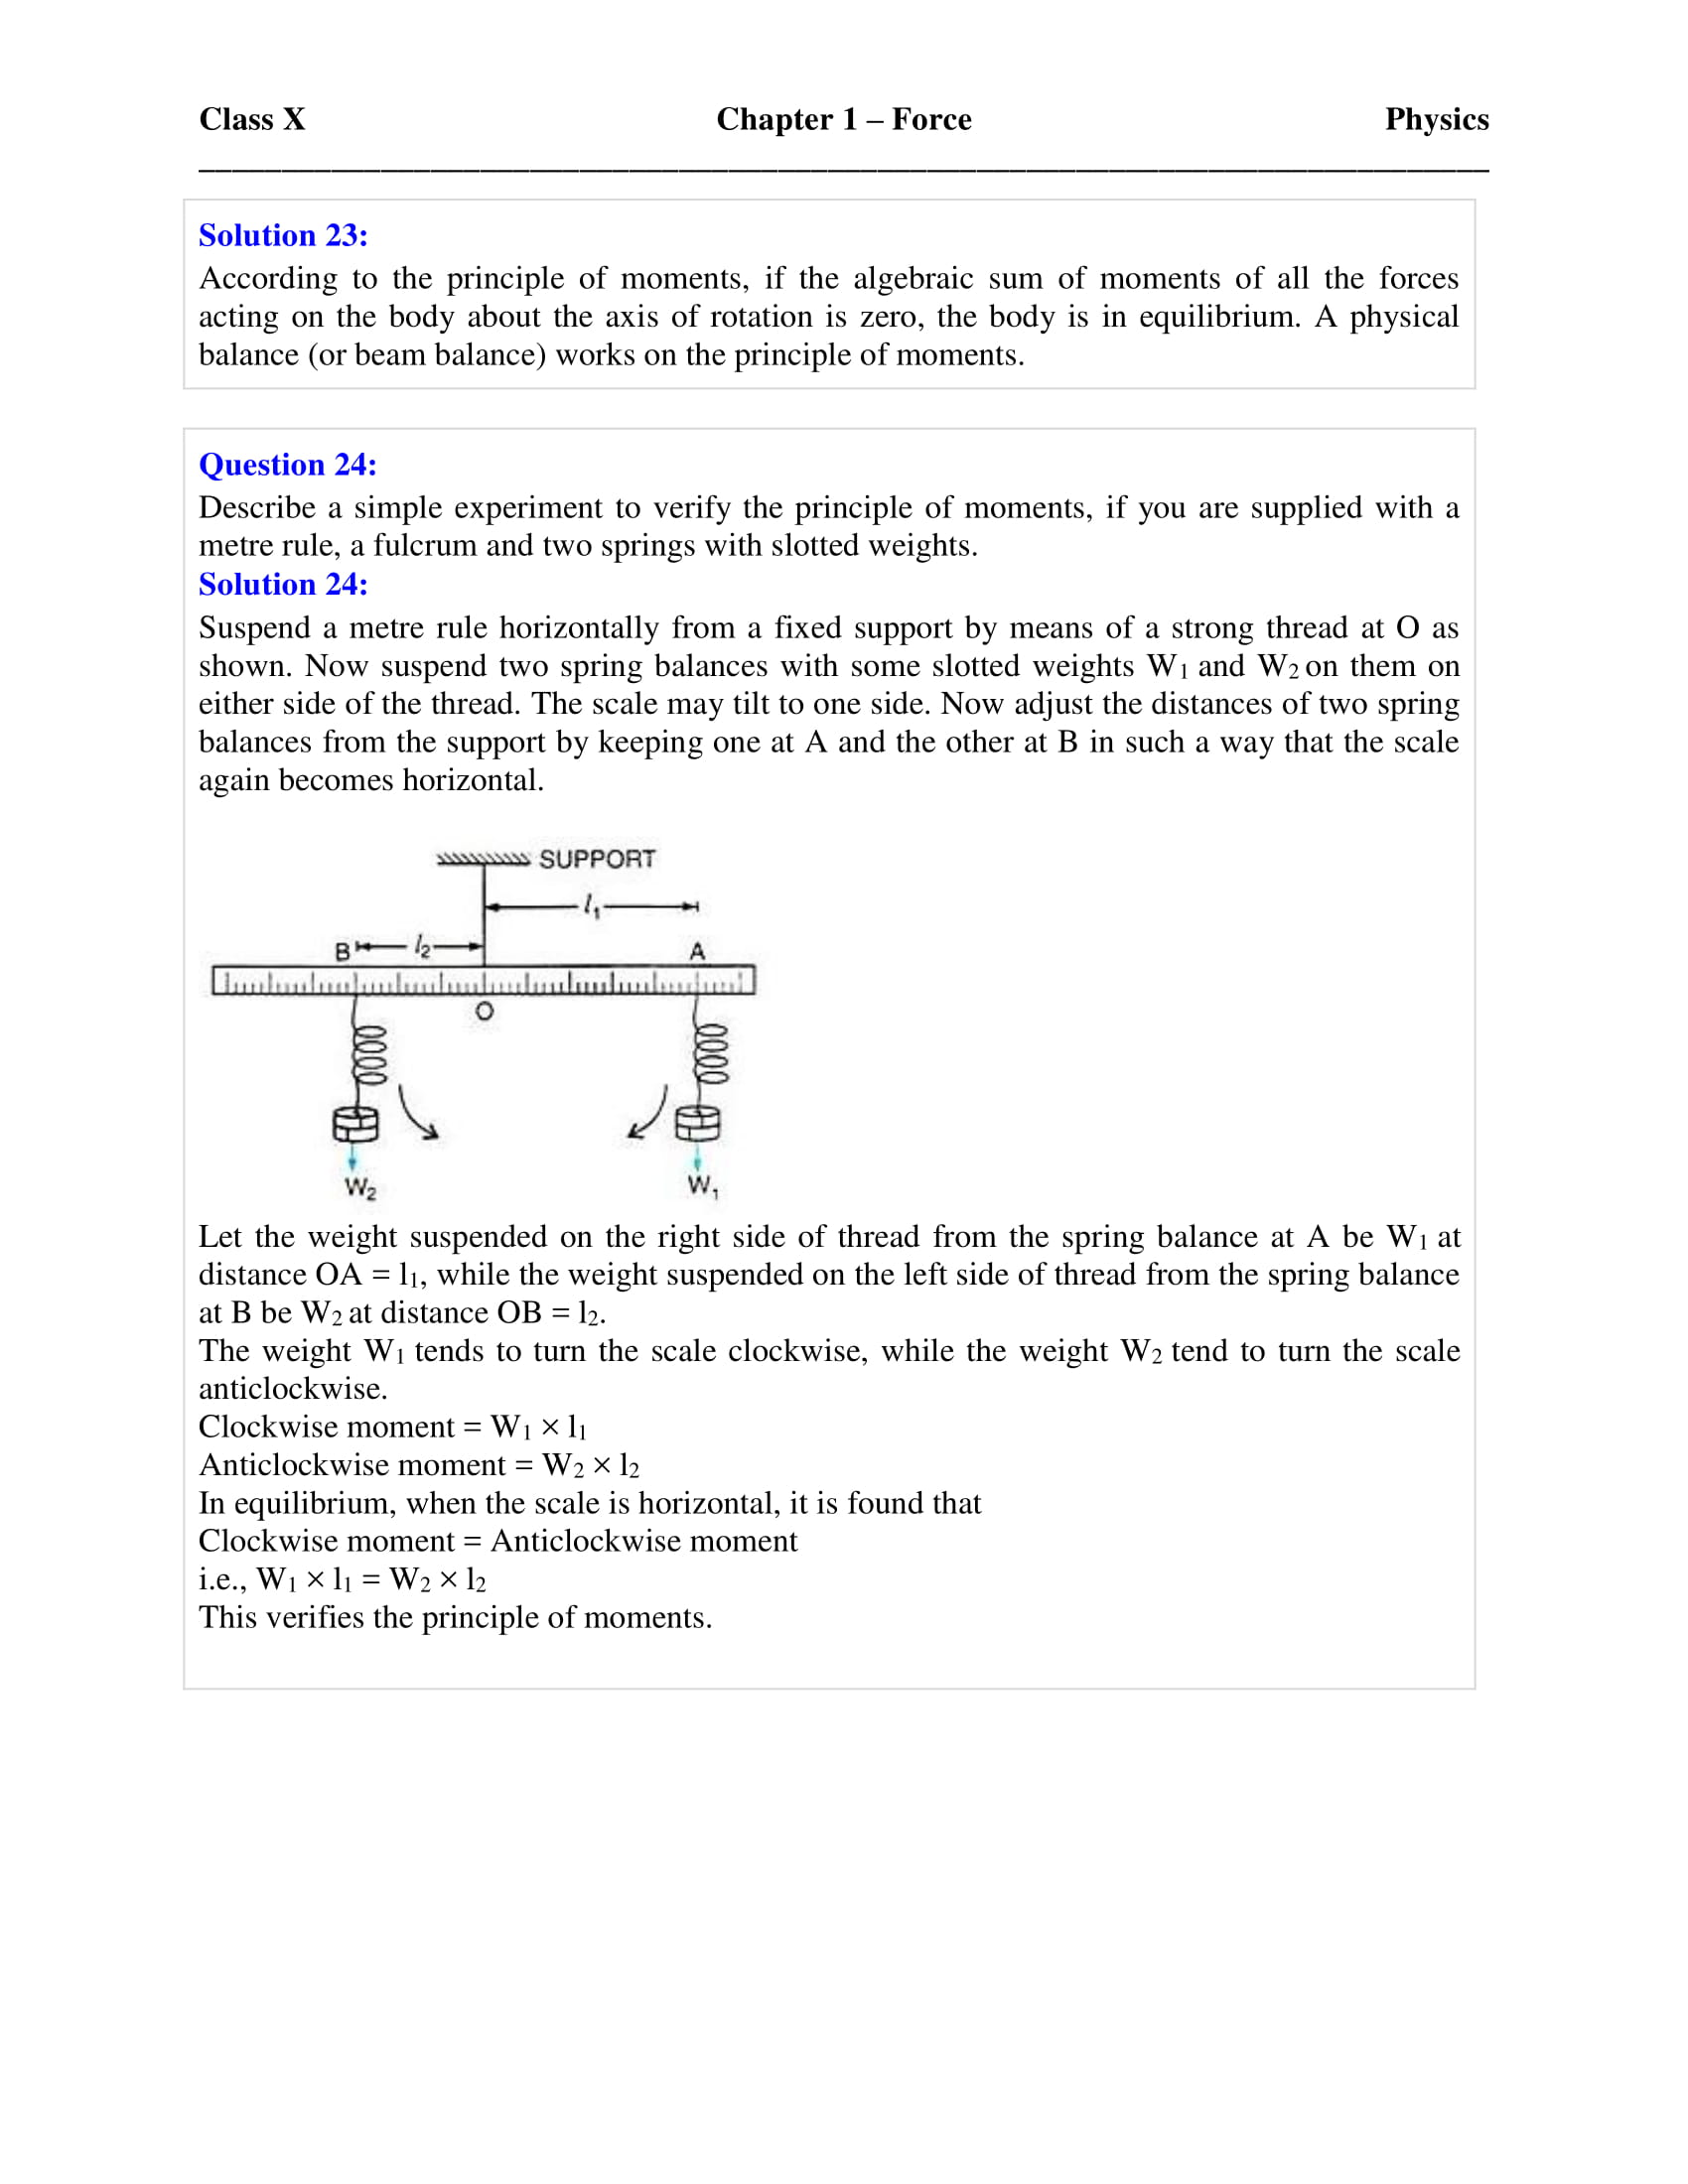 icse-selina-physics-solutions-class-10-chapter-1-force-22